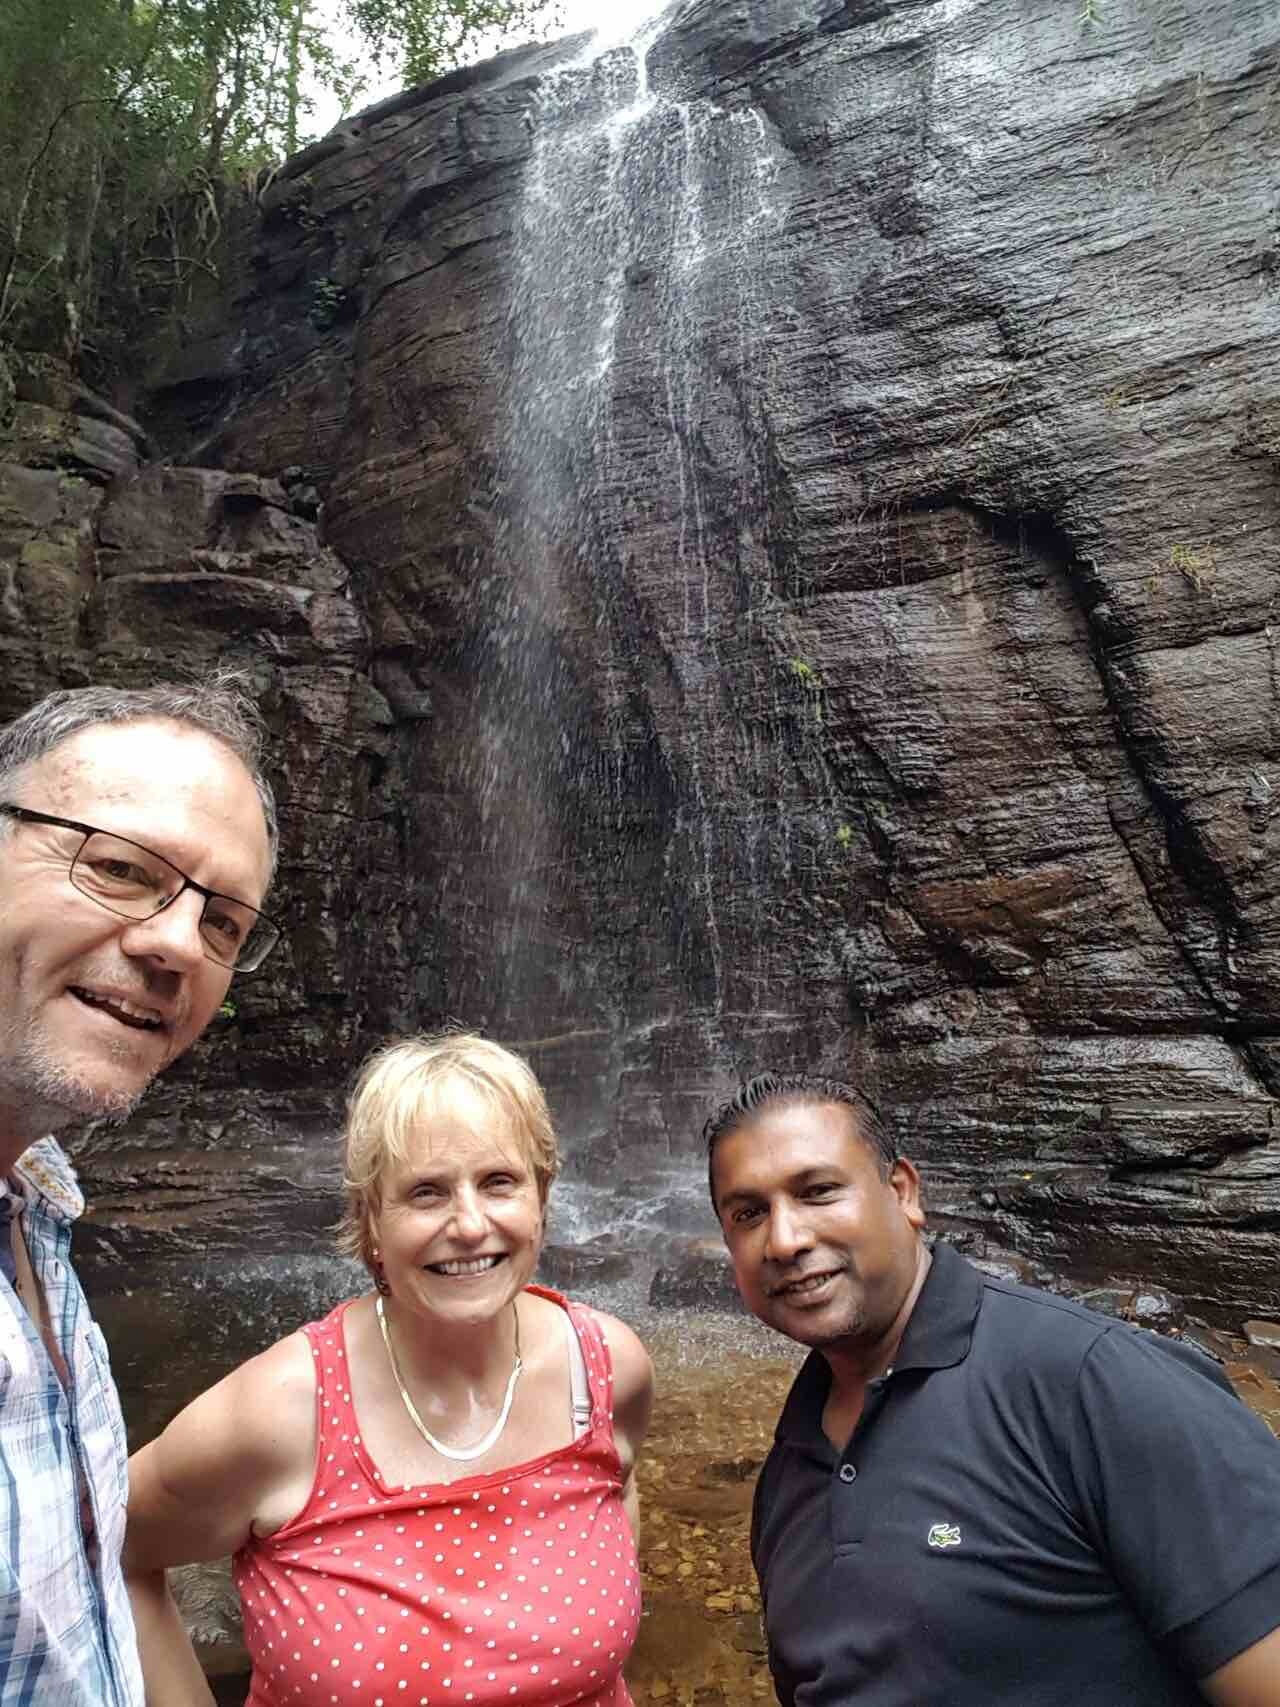 sri-lanka-waterall-holiday-review-feedback-invite-to-paradise-quentin-kate-hulm.jpg